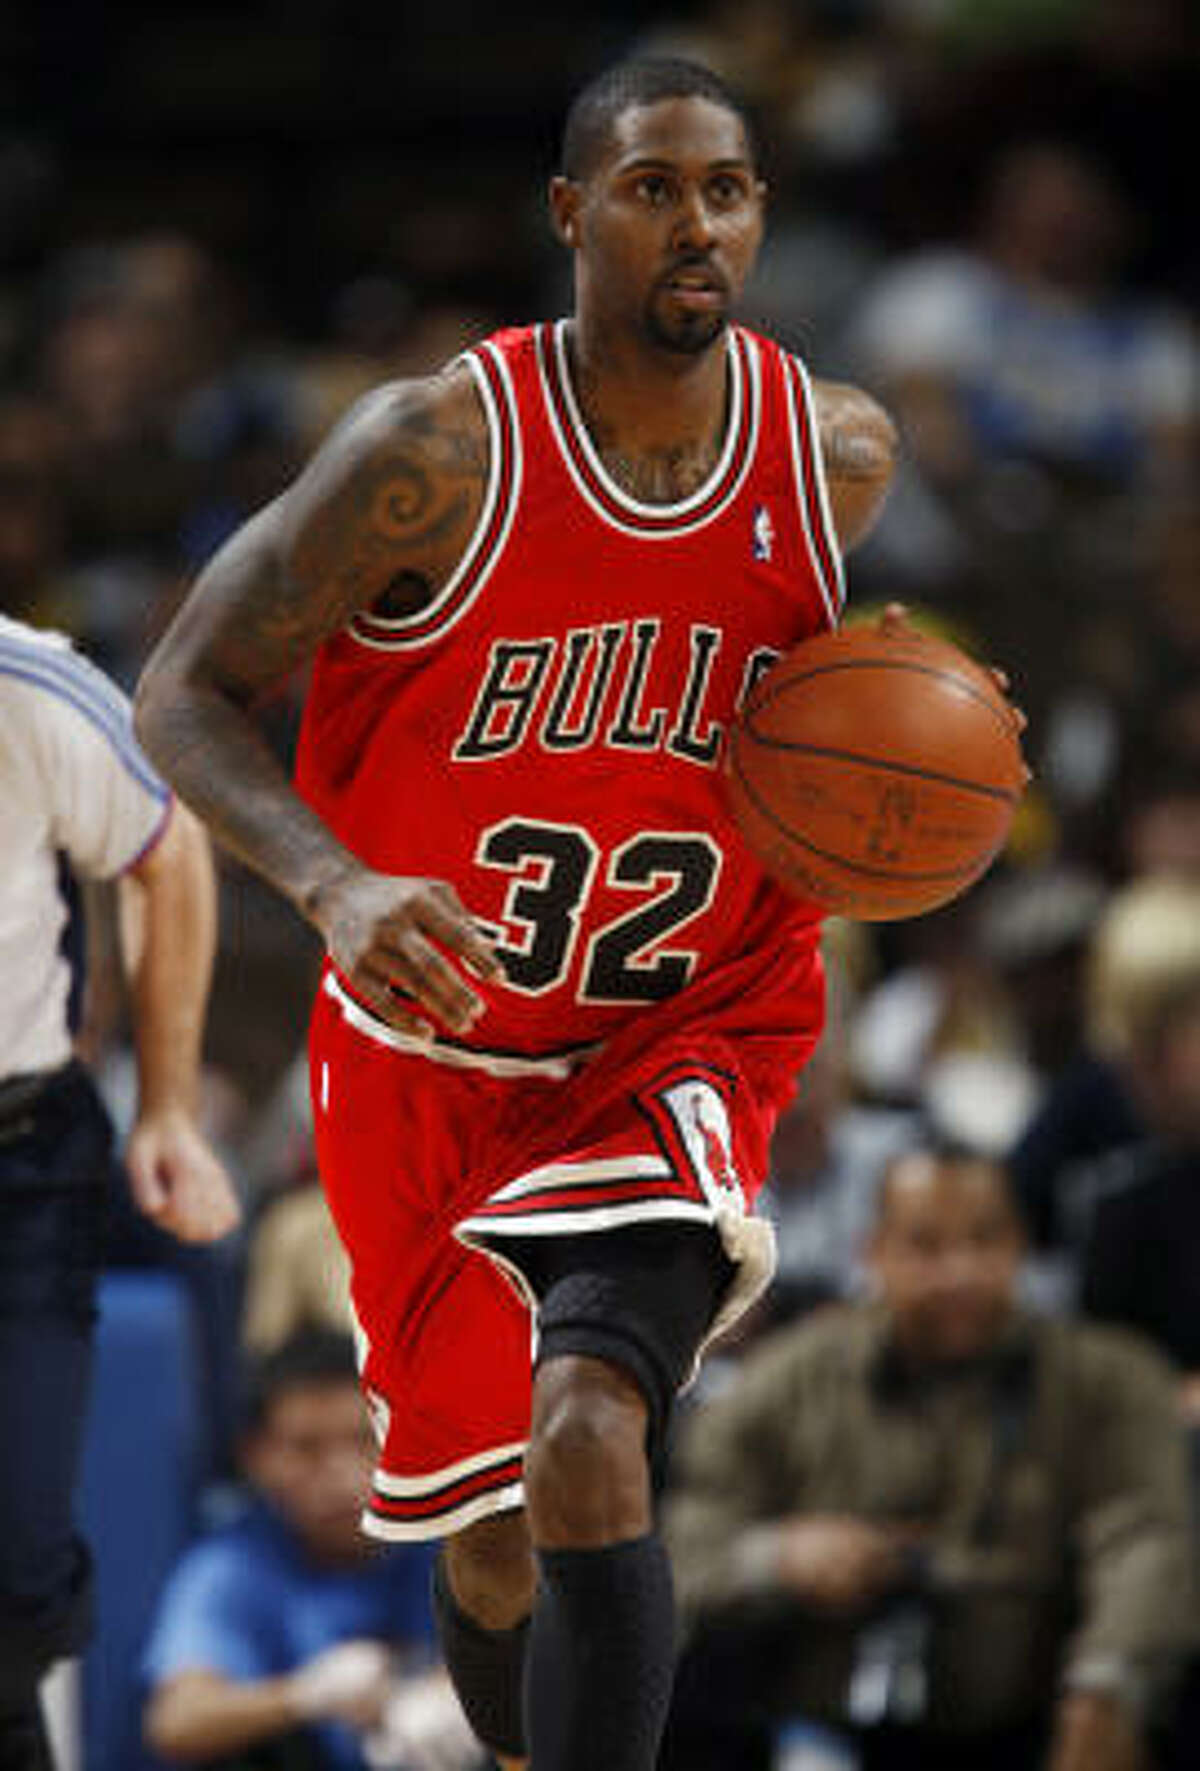 GOING: The Bulls traded disgruntled shooting guard Larry Hughes to the Knicks for Tim Thomas, Jerome James and Anthony Roberson.